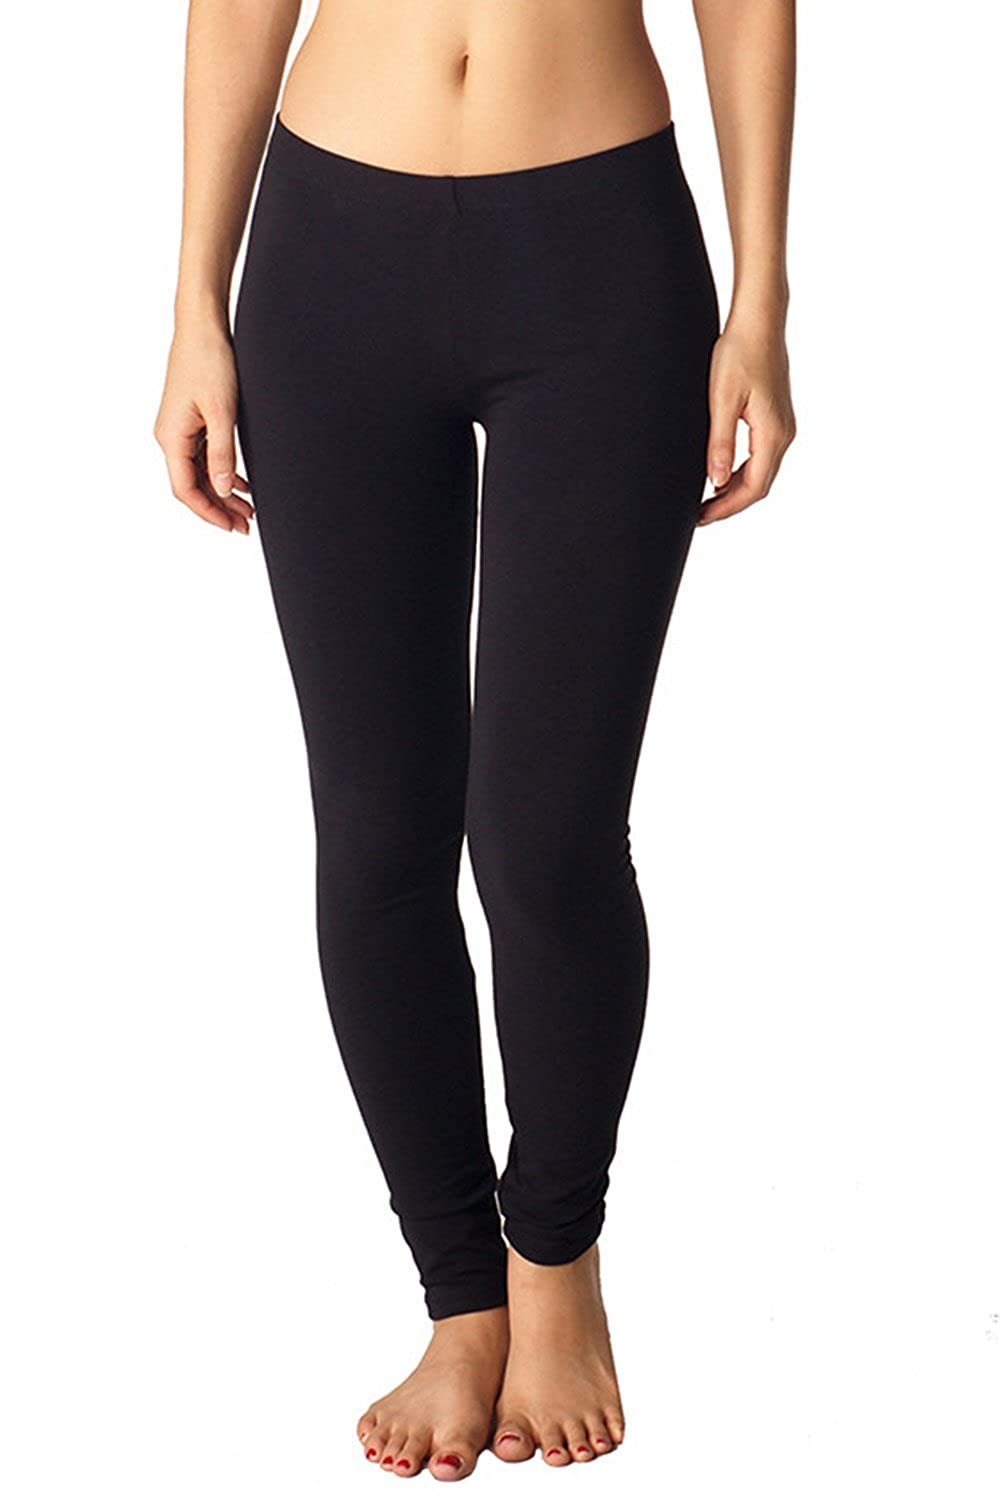 c3dc3274b464 Amazon.com: In Touch Womens Cotton Spandex Leggings: Buttery Soft Leggings for  Women Non See Through: Clothing